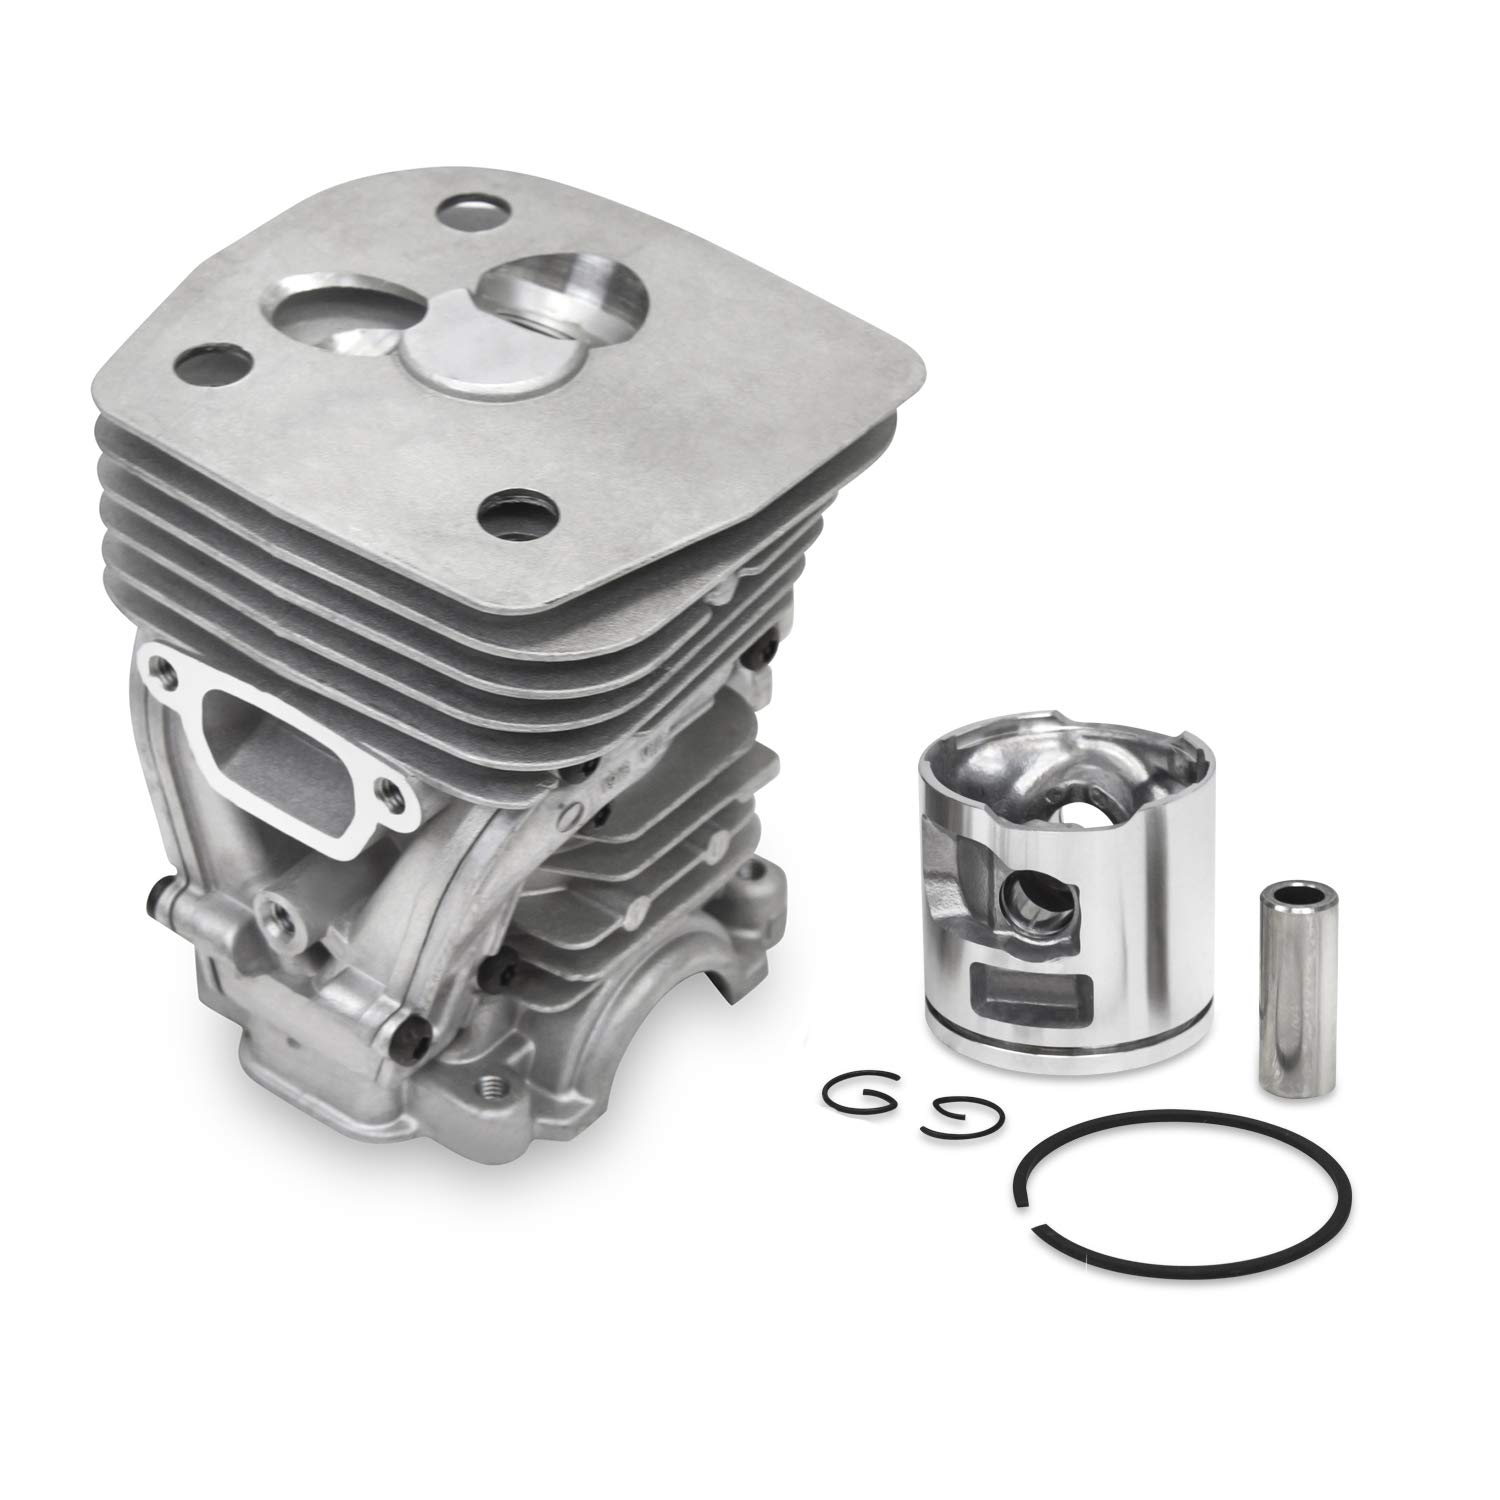 Everest Parts Supplies New Cylinder Head FITS Husqvarna 455 460 47mm Piston KIT Piston PIN Rings CIRCLIP by Everest